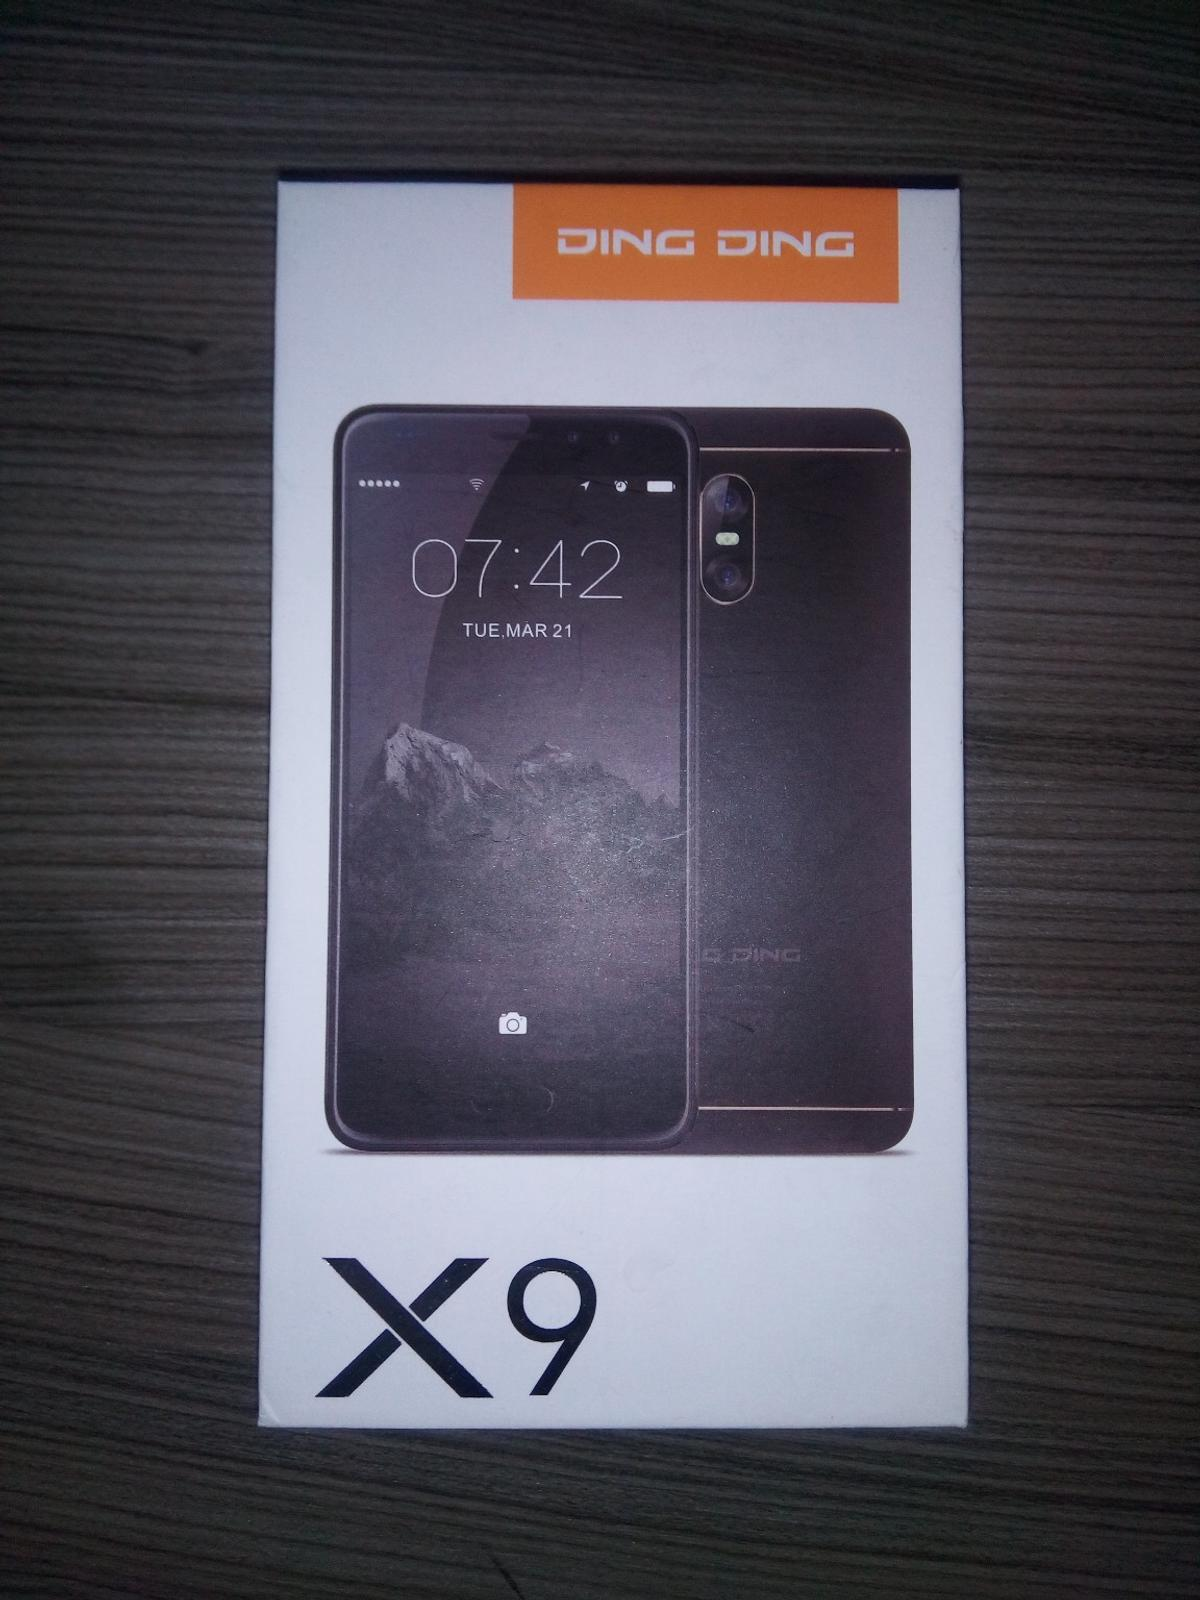 SIM Free Smartphone DING DING X9 4G Storage: 16gb RAM: 3gb Battery: 2800mah Resolution: FHD (1920*1080 Rear camera: 13MP Front camera: 5MP Brand new available!